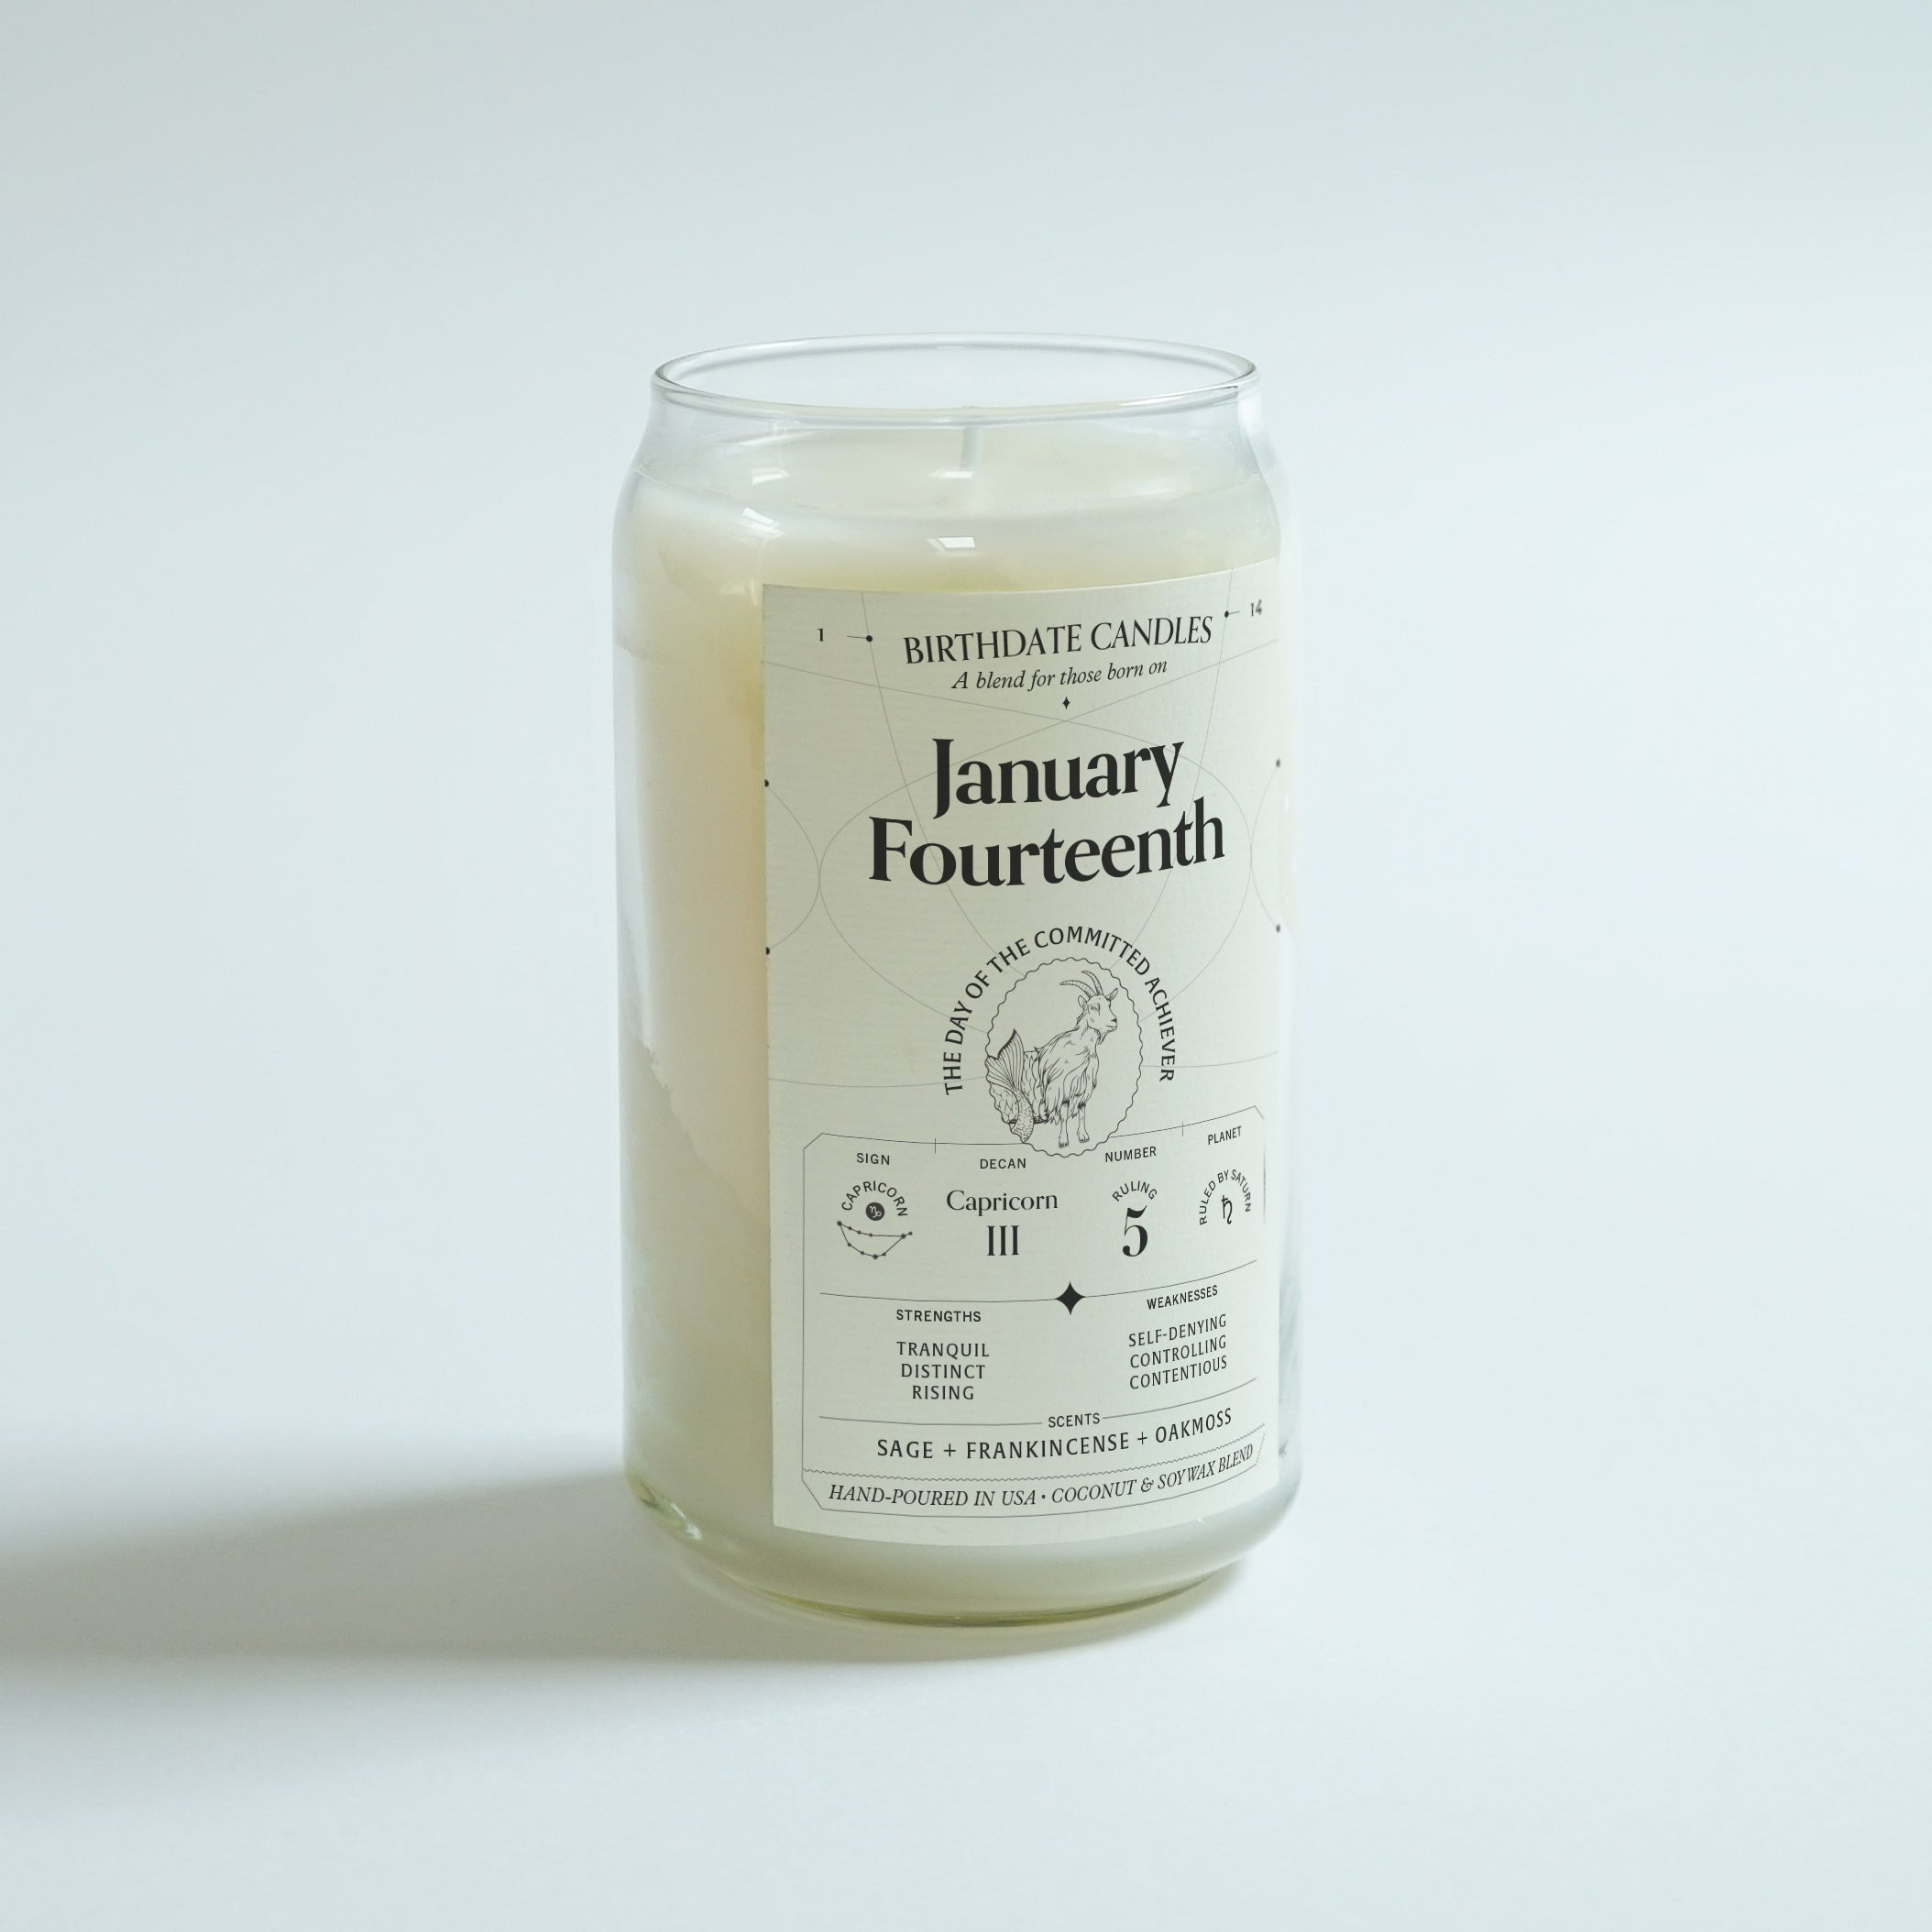 The January Fourteenth Candle